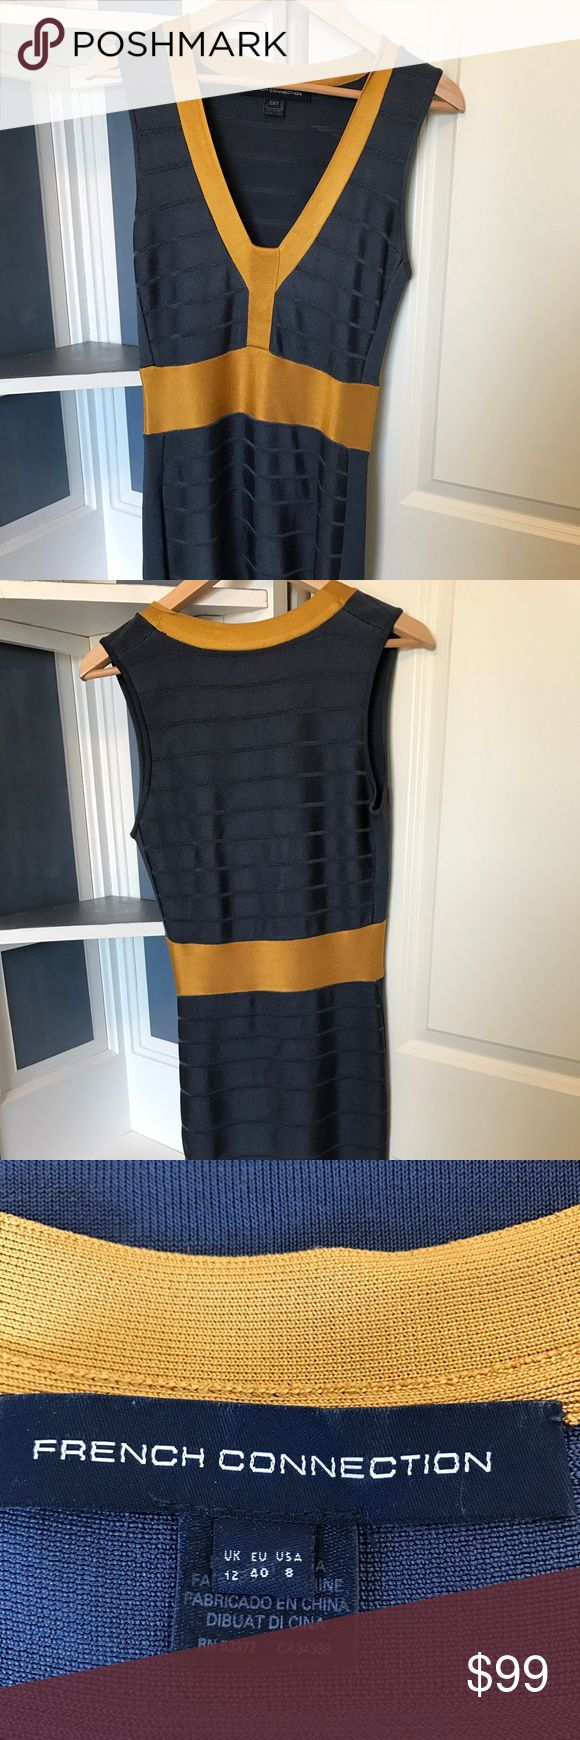 One Day Sale! EUC French Connection Bandage dress Gorgeous French Connection, blue and gold bandage dress. French Connection Dresses